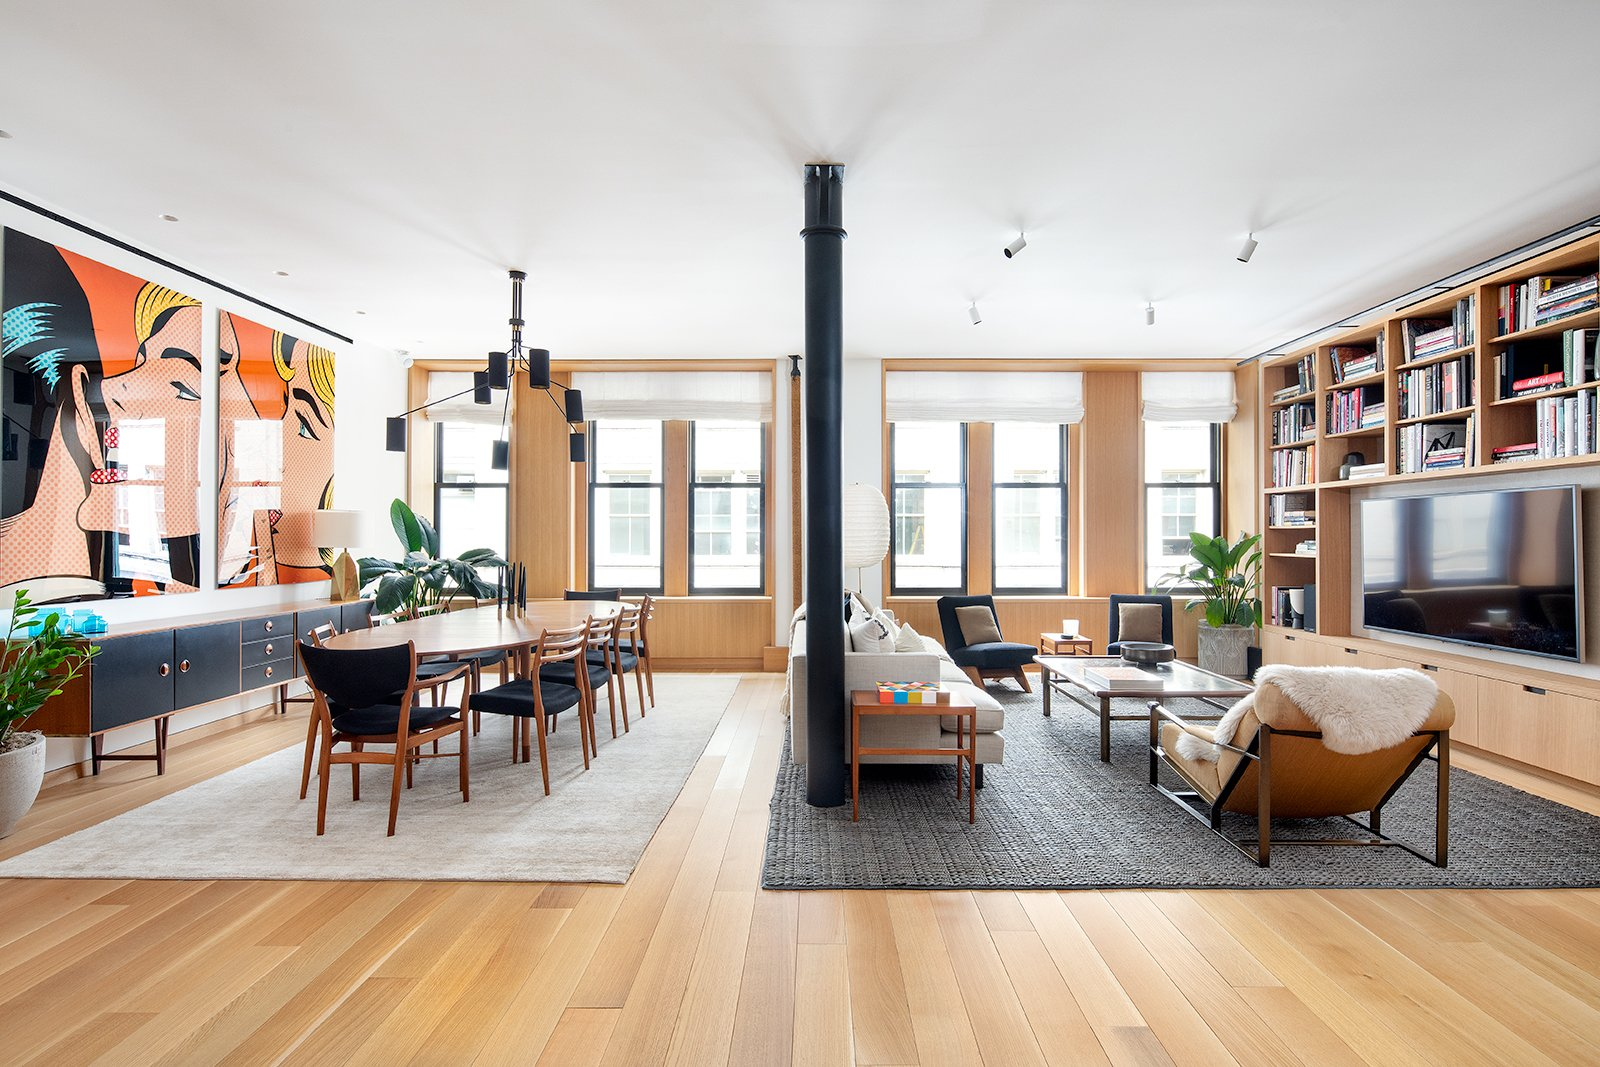 Living Room, Chair, Sofa, Light Hardwood Floor, End Tables, Recessed Lighting, Coffee Tables, Rug Floor, Ceiling Lighting, Shelves, Floor Lighting, Pendant Lighting, and Console Tables  Photos from An Updated Historic Loft in Manhattan Is Listed For $4.5M